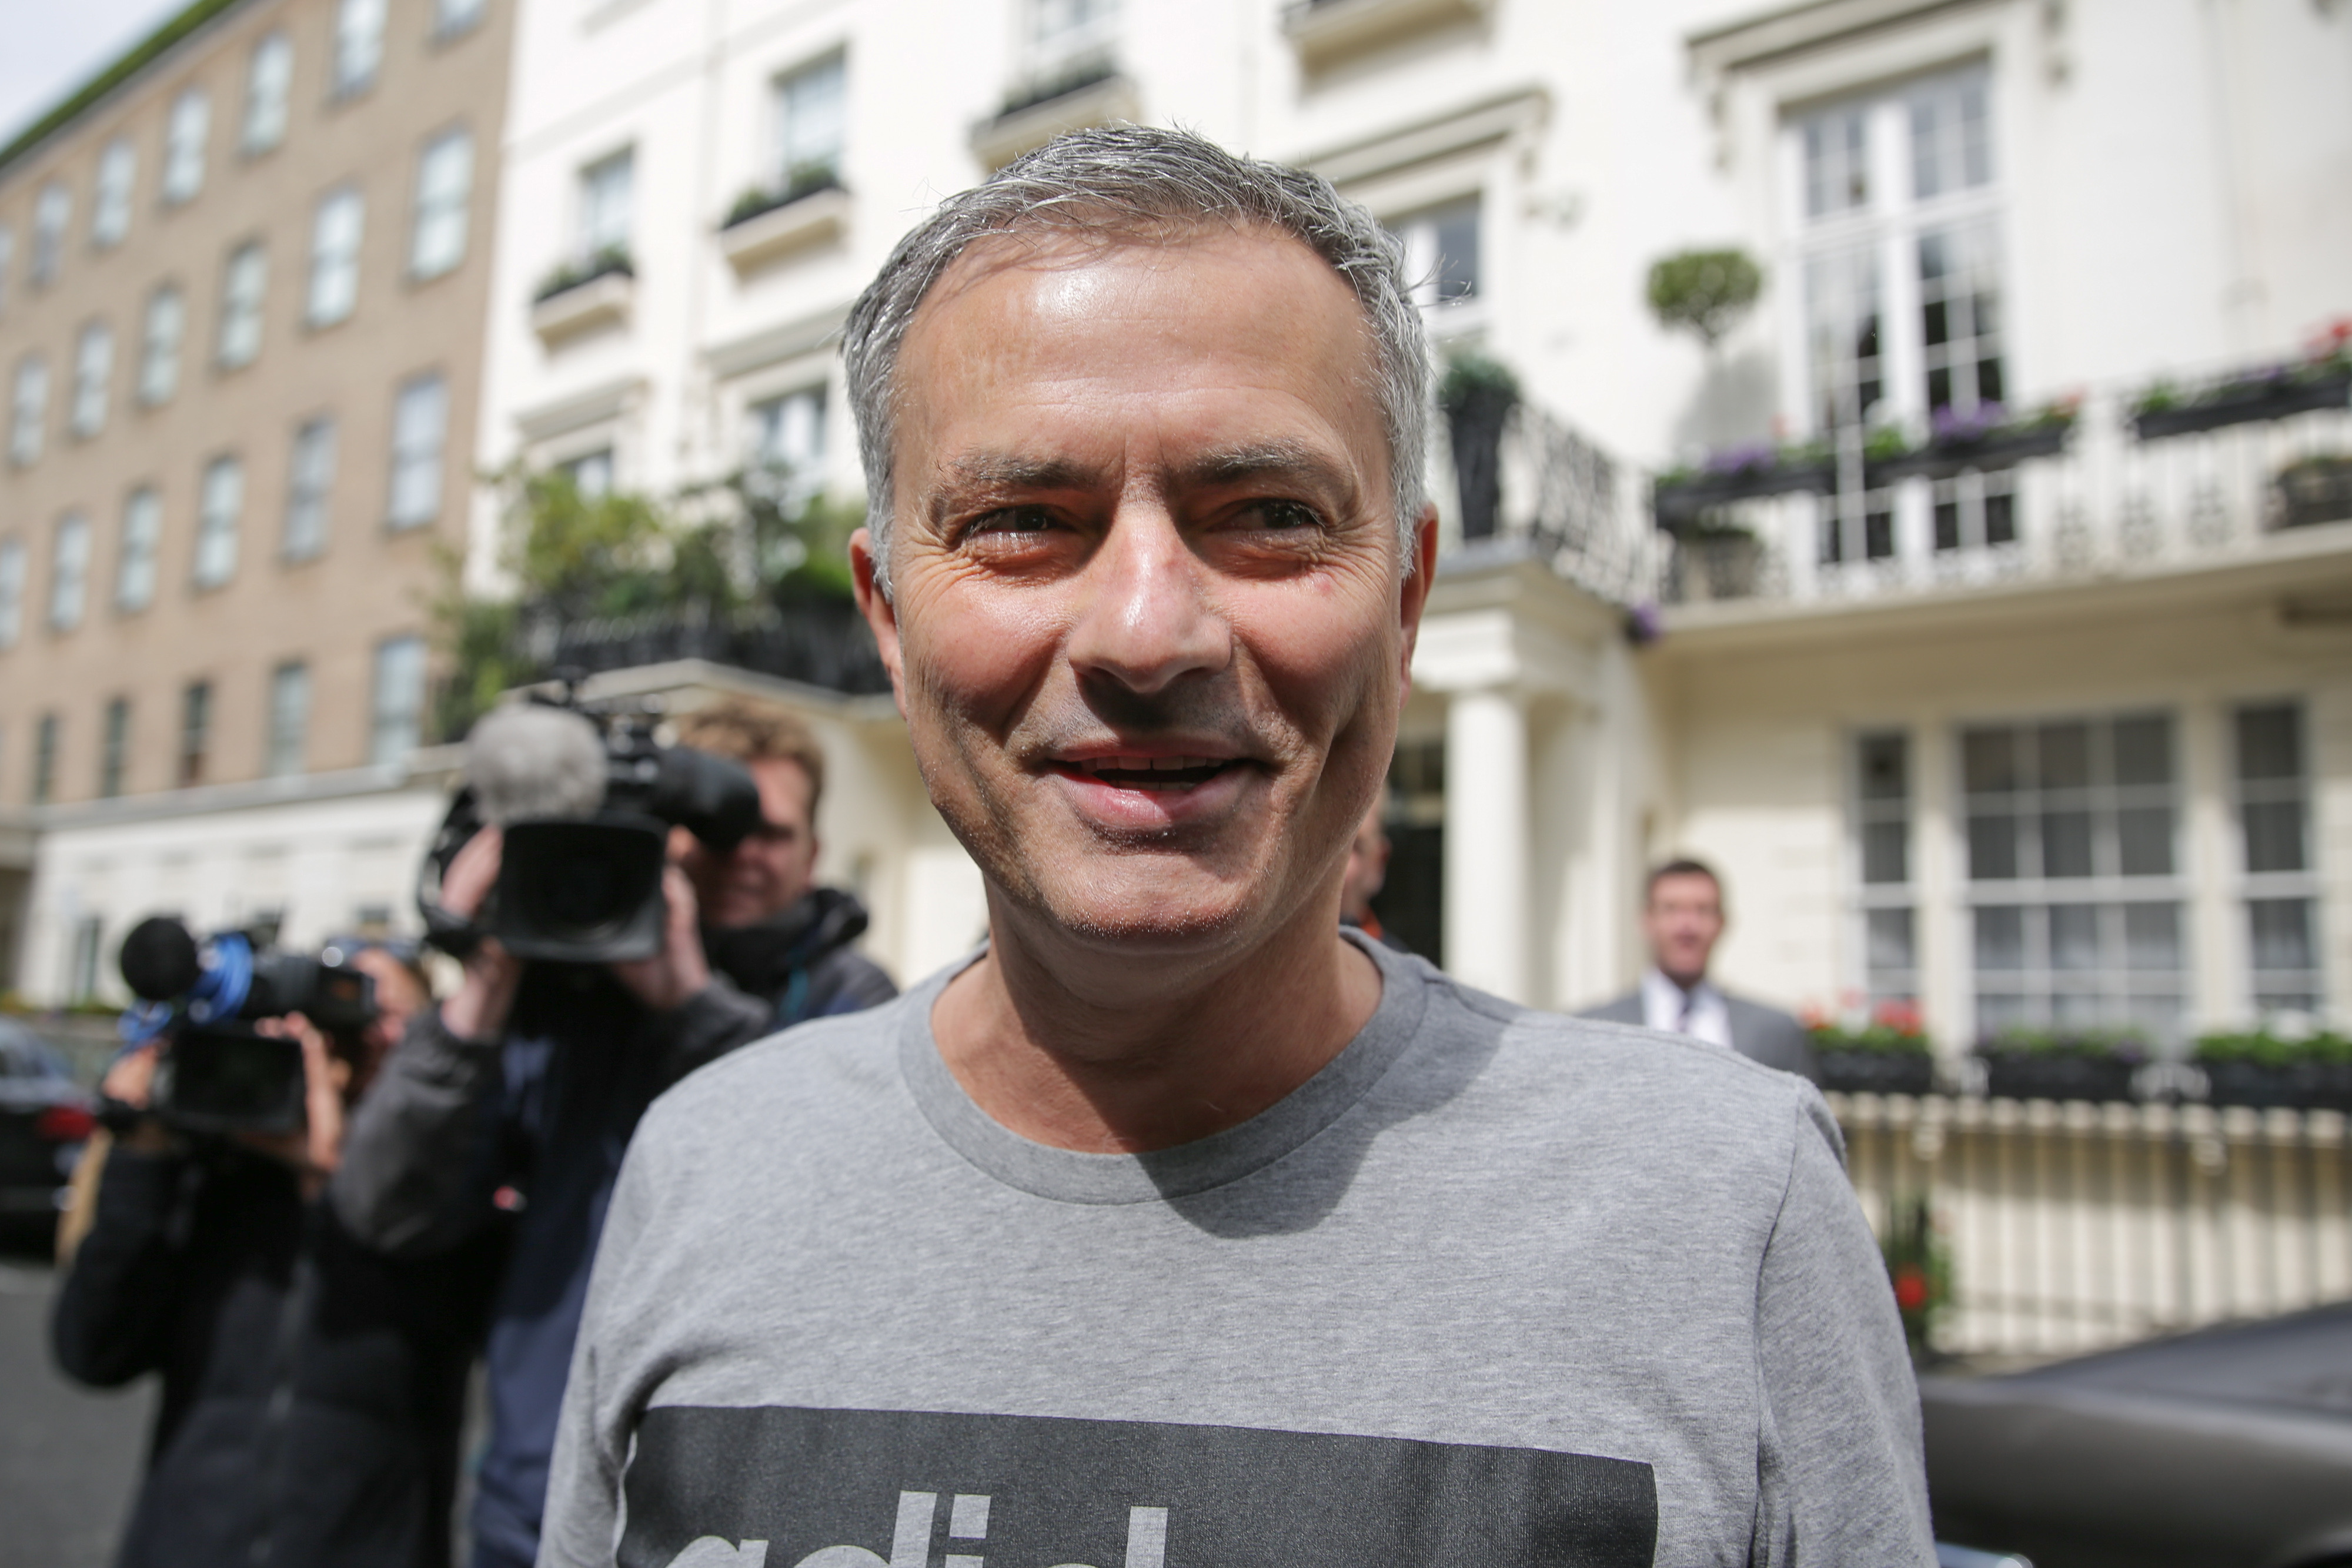 Mourinho will be happy to know he's the second best ever United manager. Image: PA Images